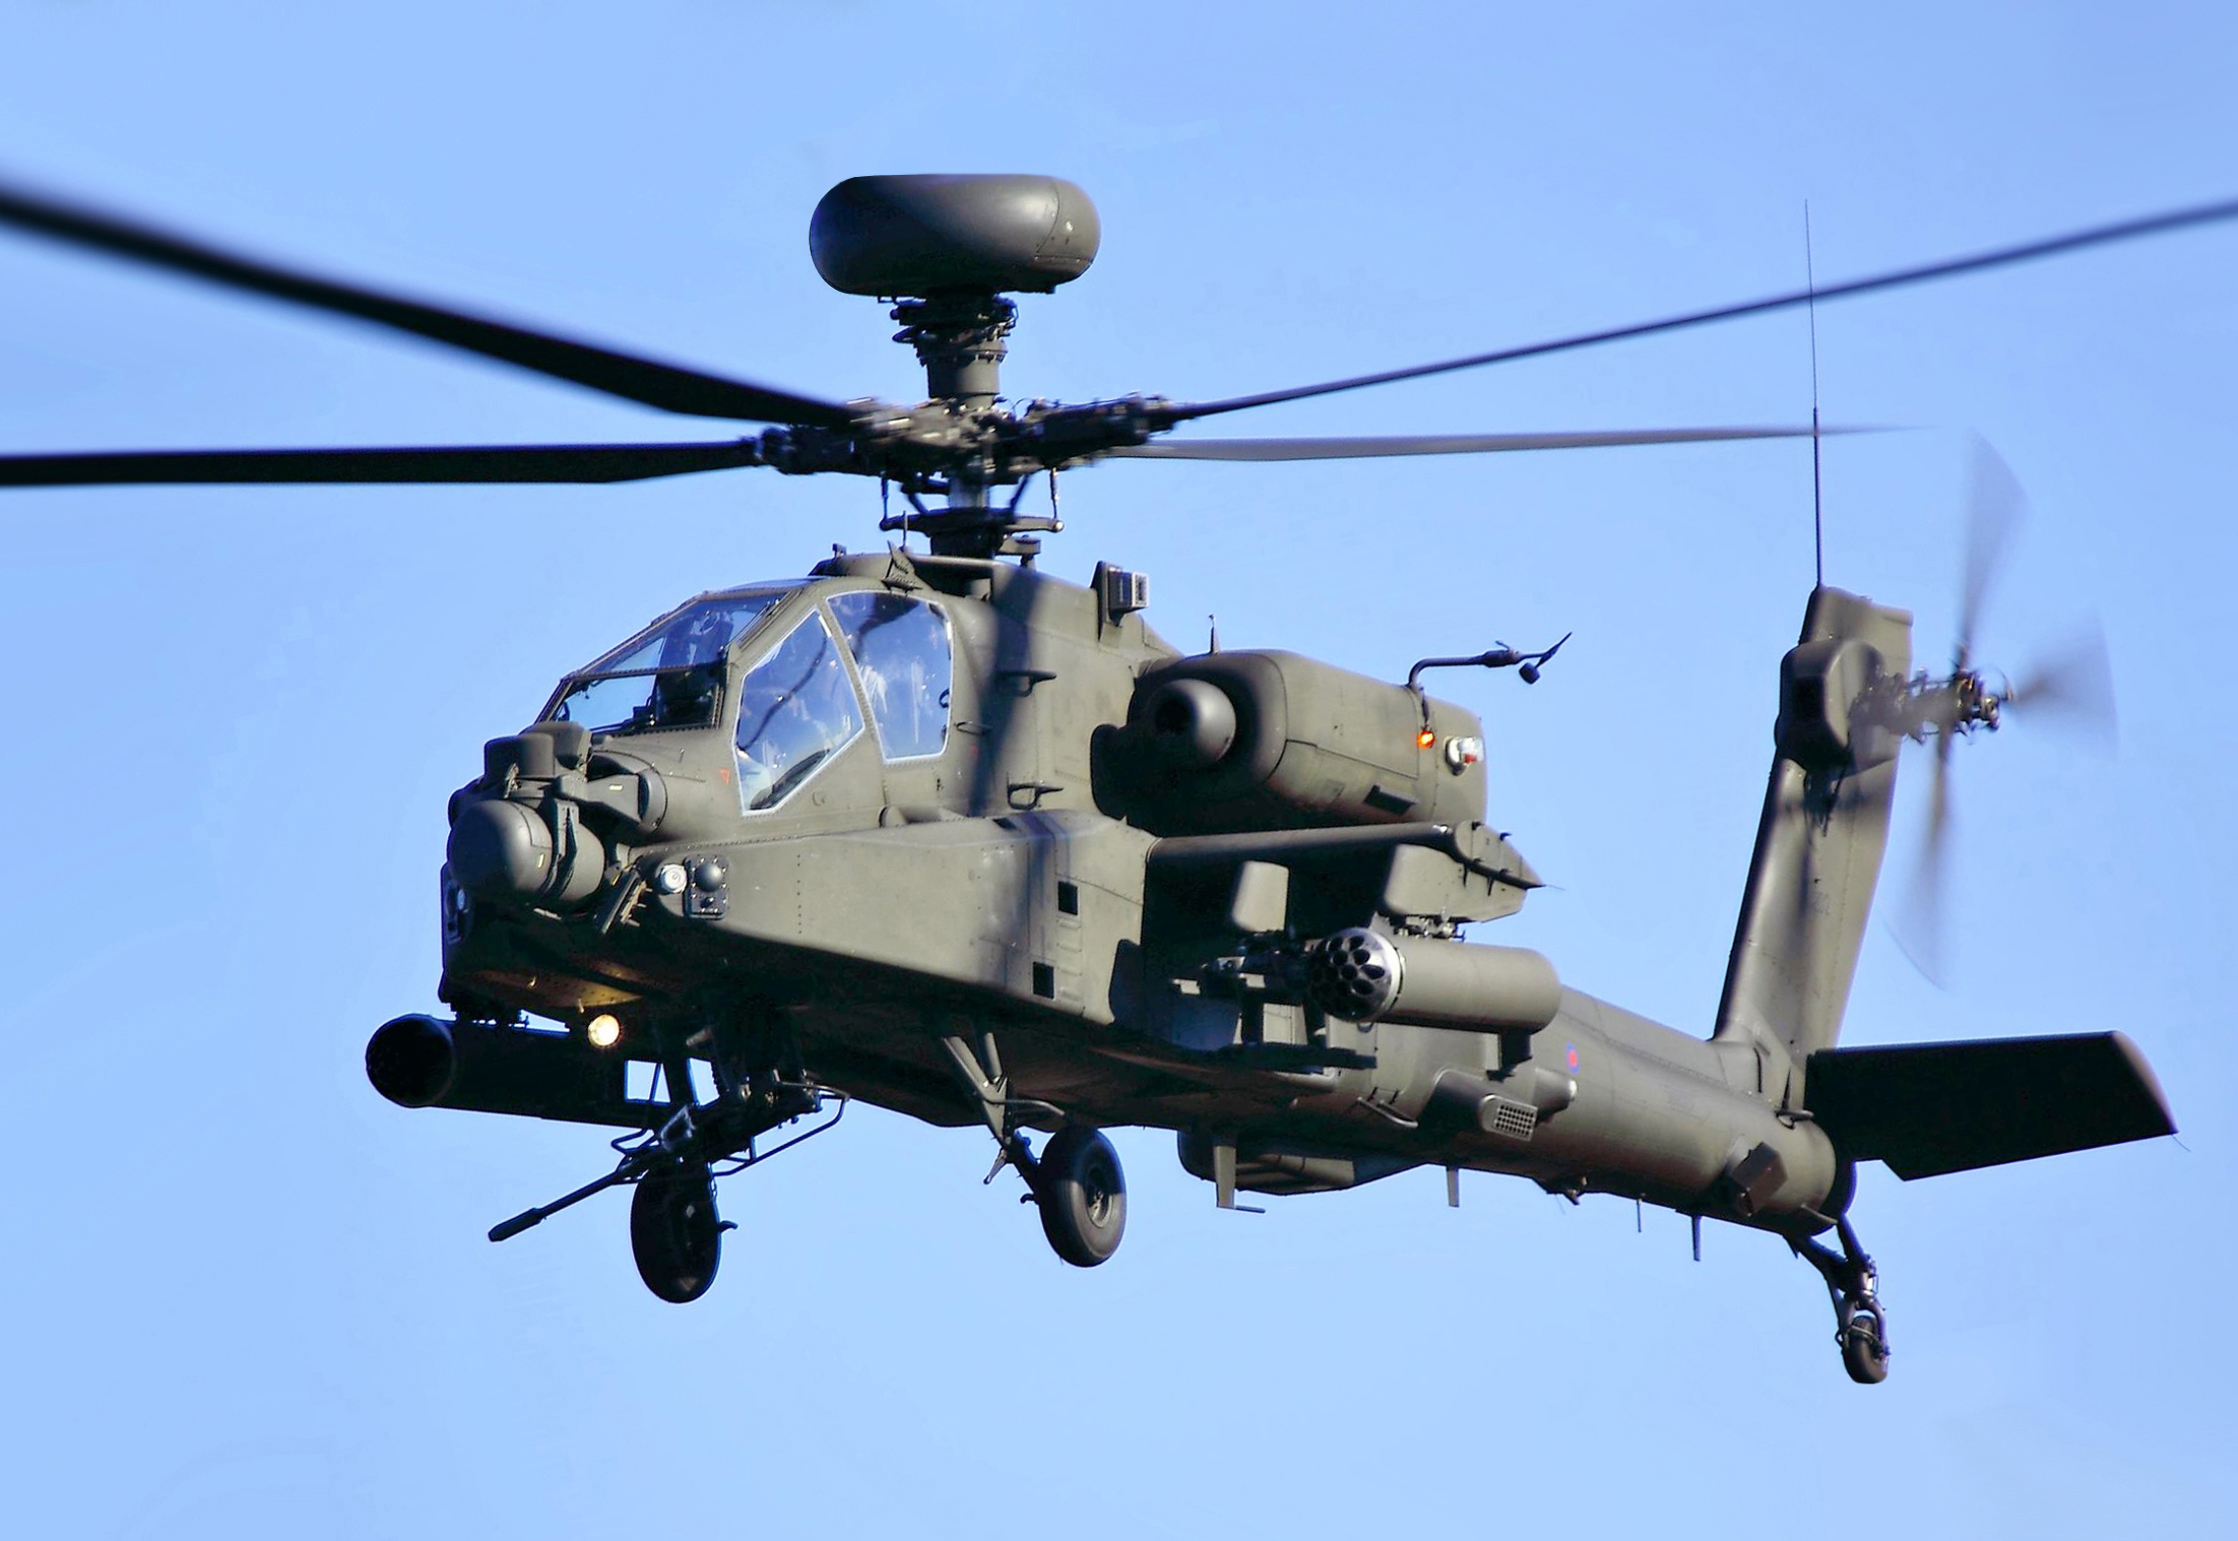 Agustawestland Apache Wikipedia Check out our current live radar and weather forecasts for westland, michigan to help plan your day. agustawestland apache wikipedia